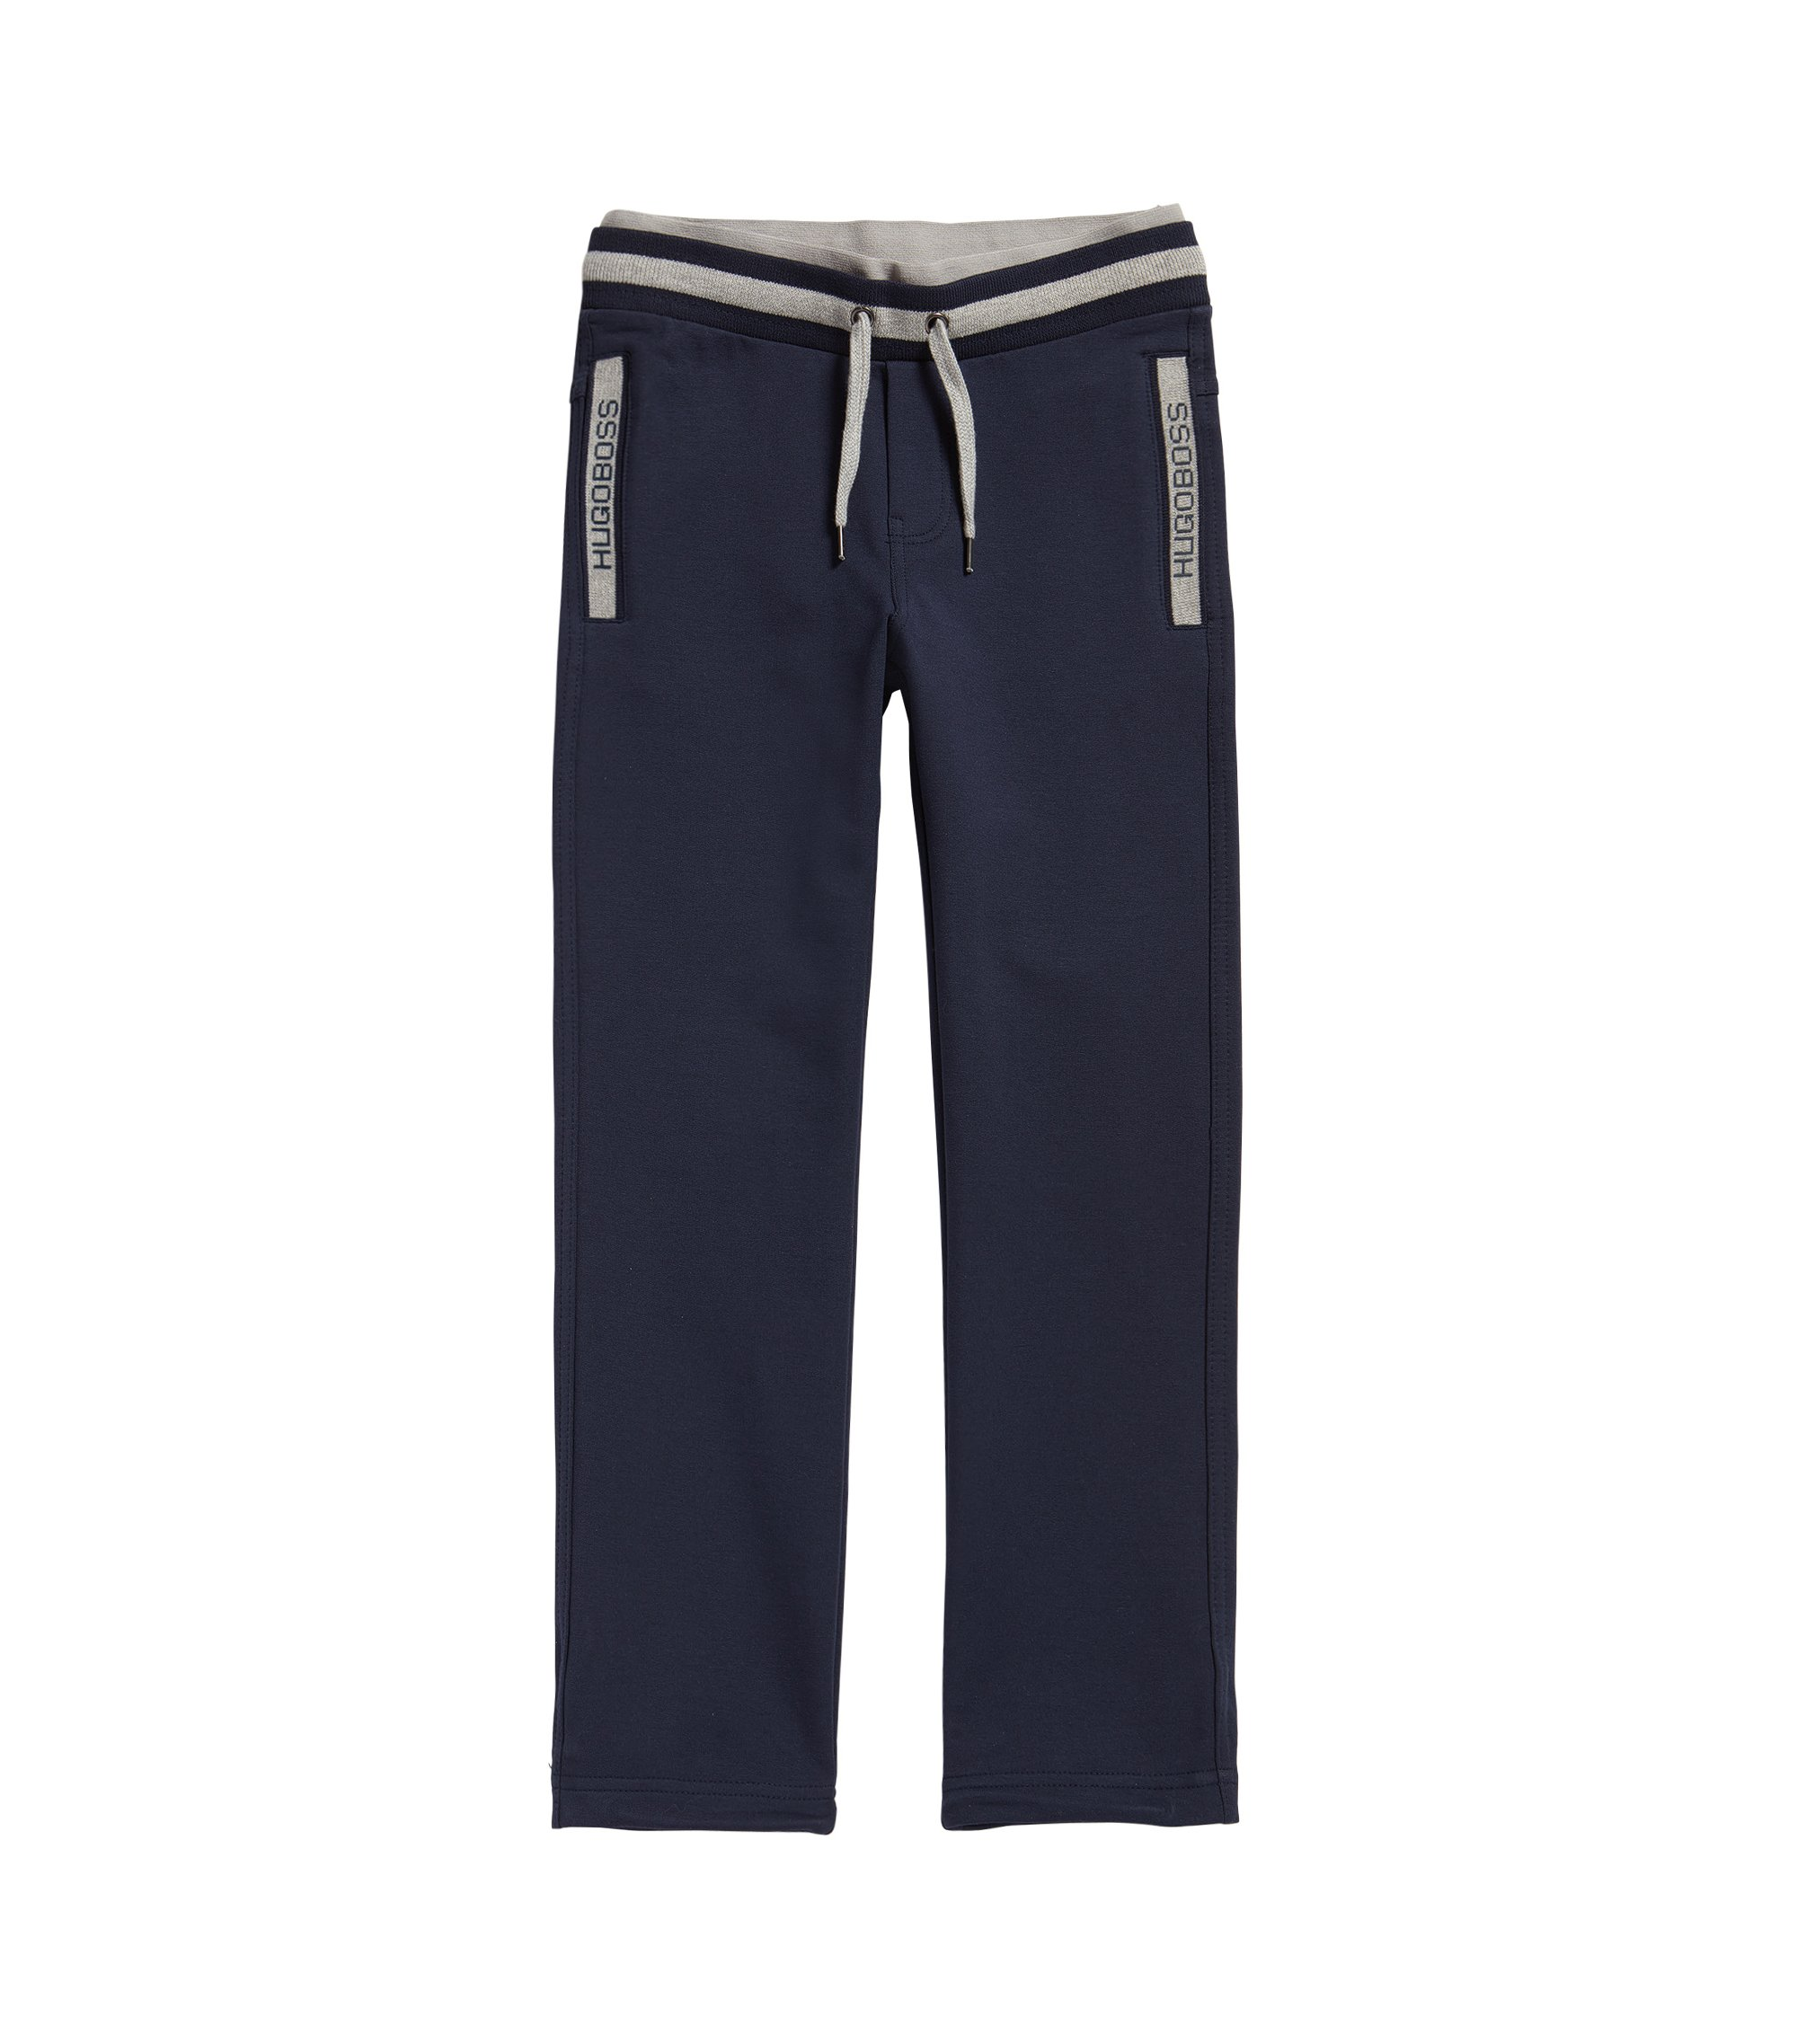 Kids' drawstring jogging bottoms in stretch cotton, Dark Blue